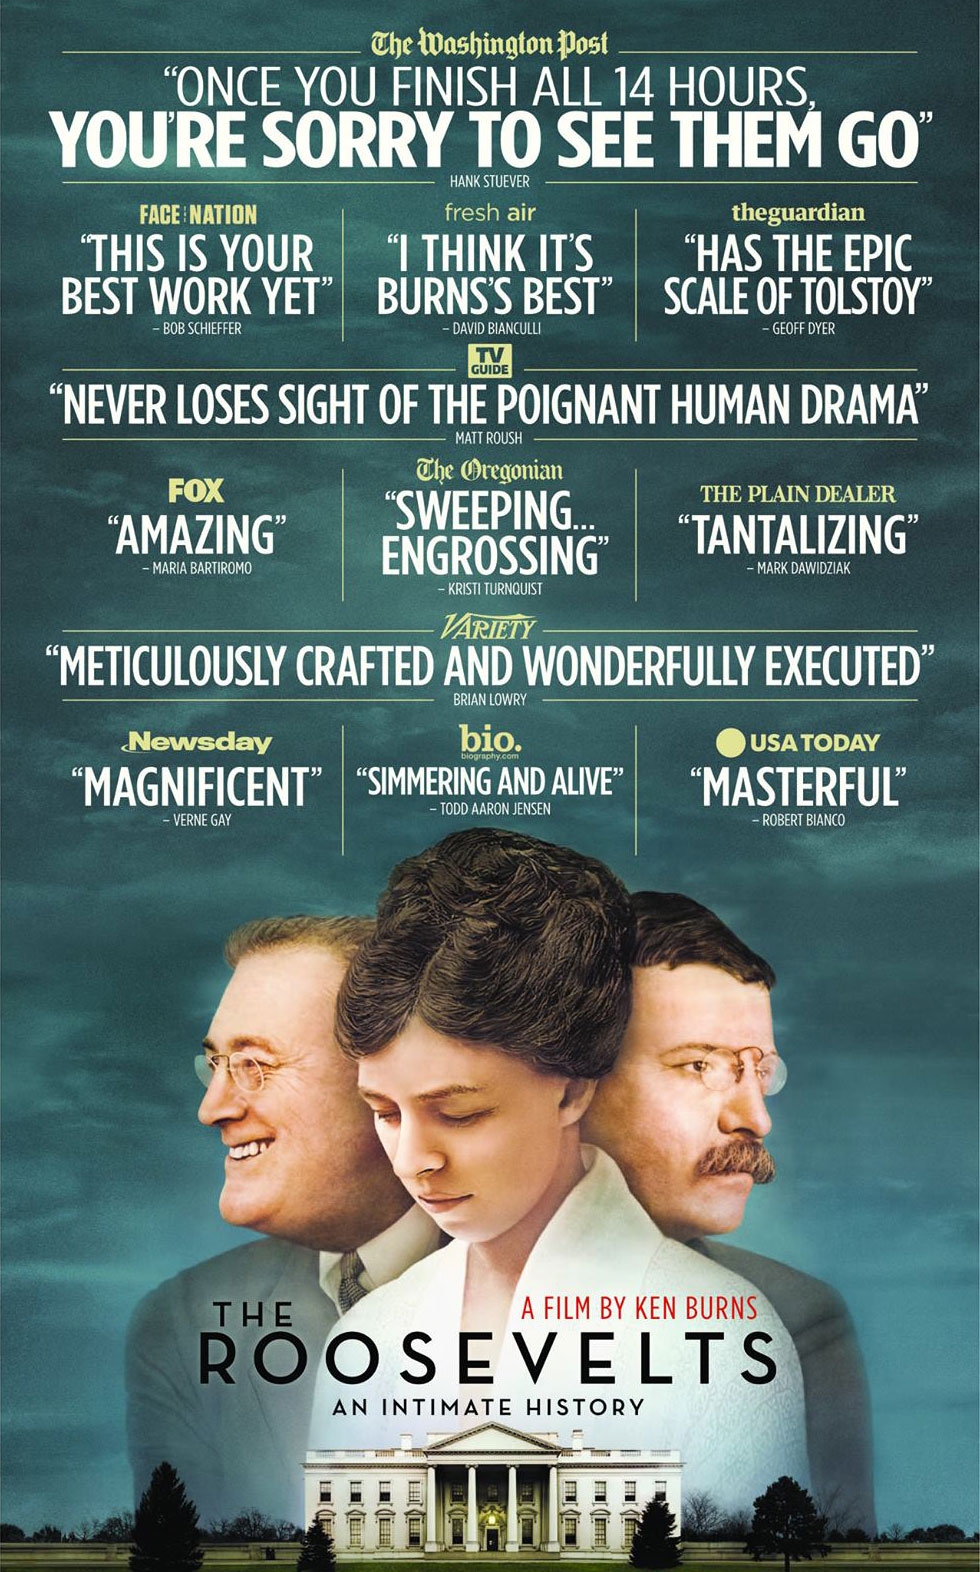 The critics praise for The Roosevelts